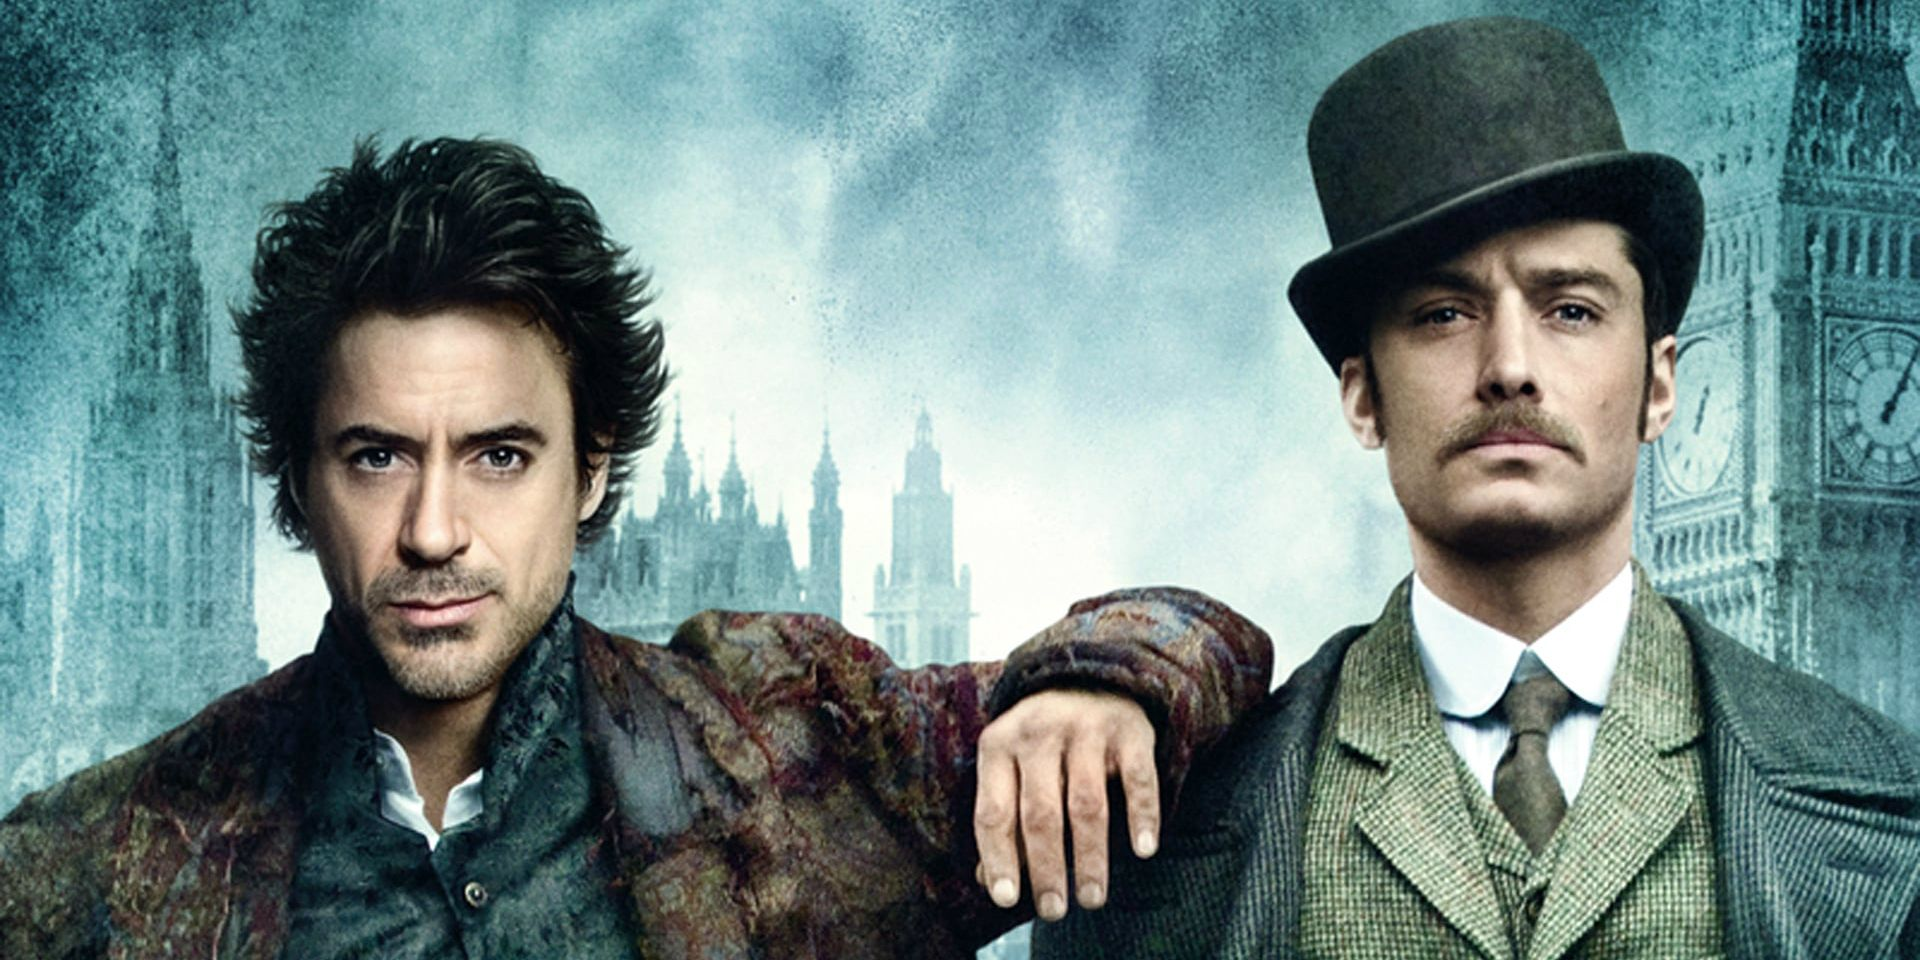 Sherlock Holmes 3 Release Date Set For December 2020